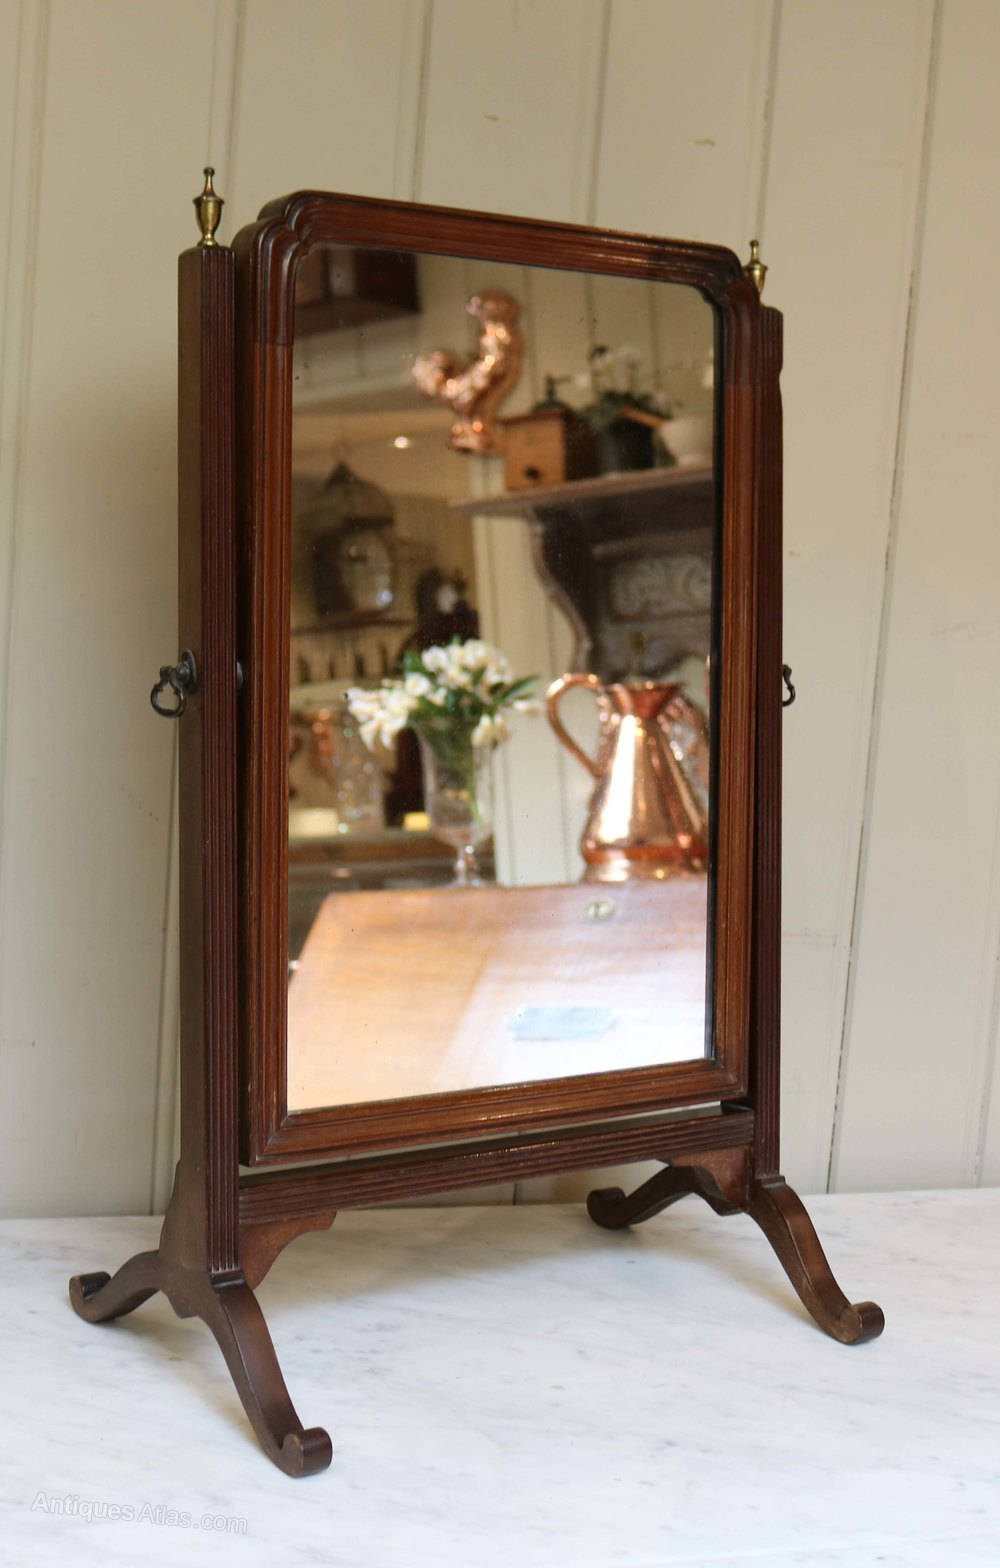 Antiques atlas th century mahogany dressing table mirror